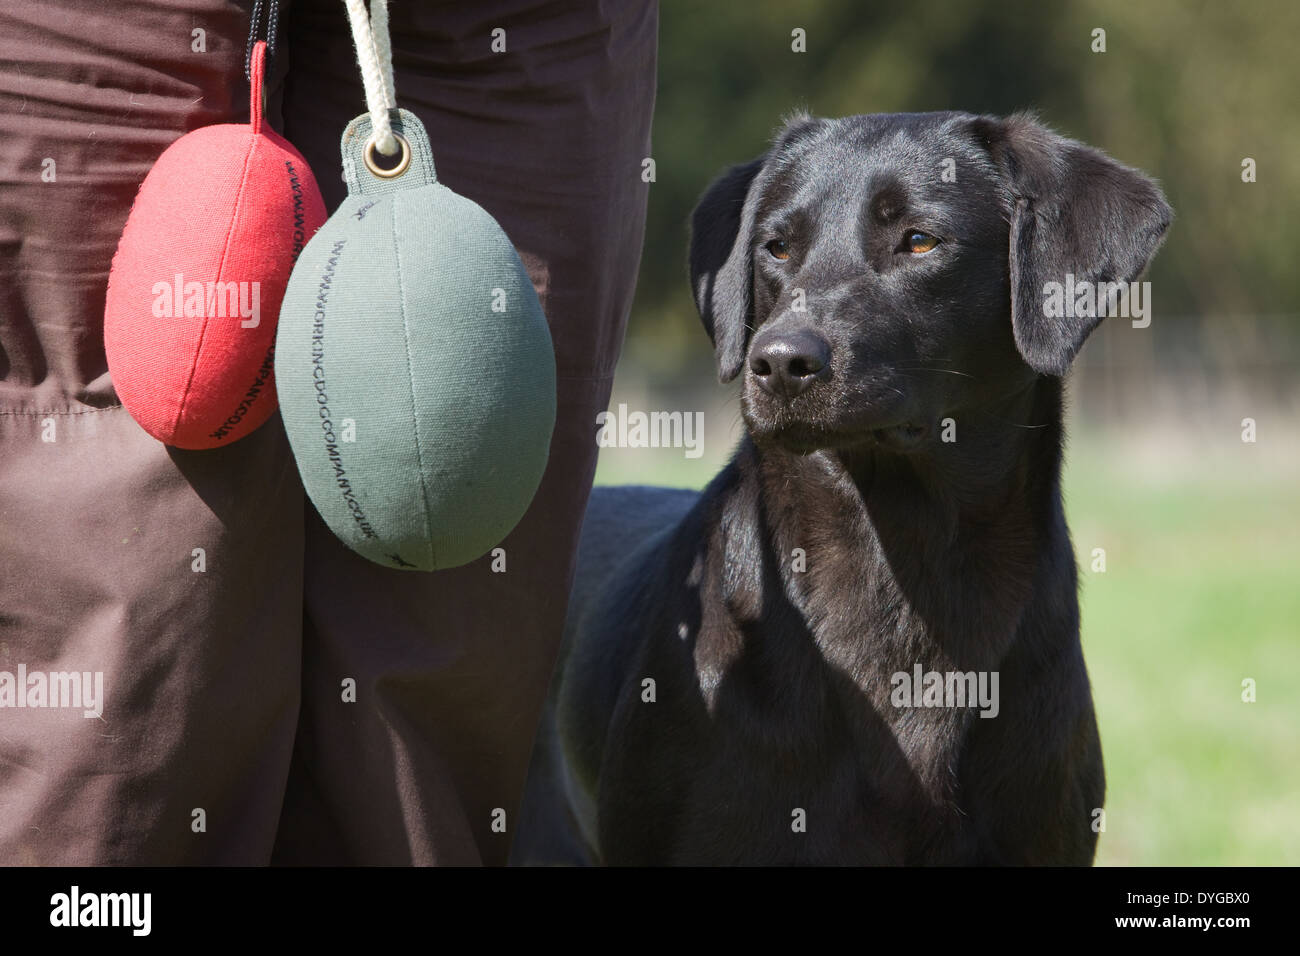 A black Labrador Retriever working dog with its owner during an outdoor training session in a grass field - Stock Image